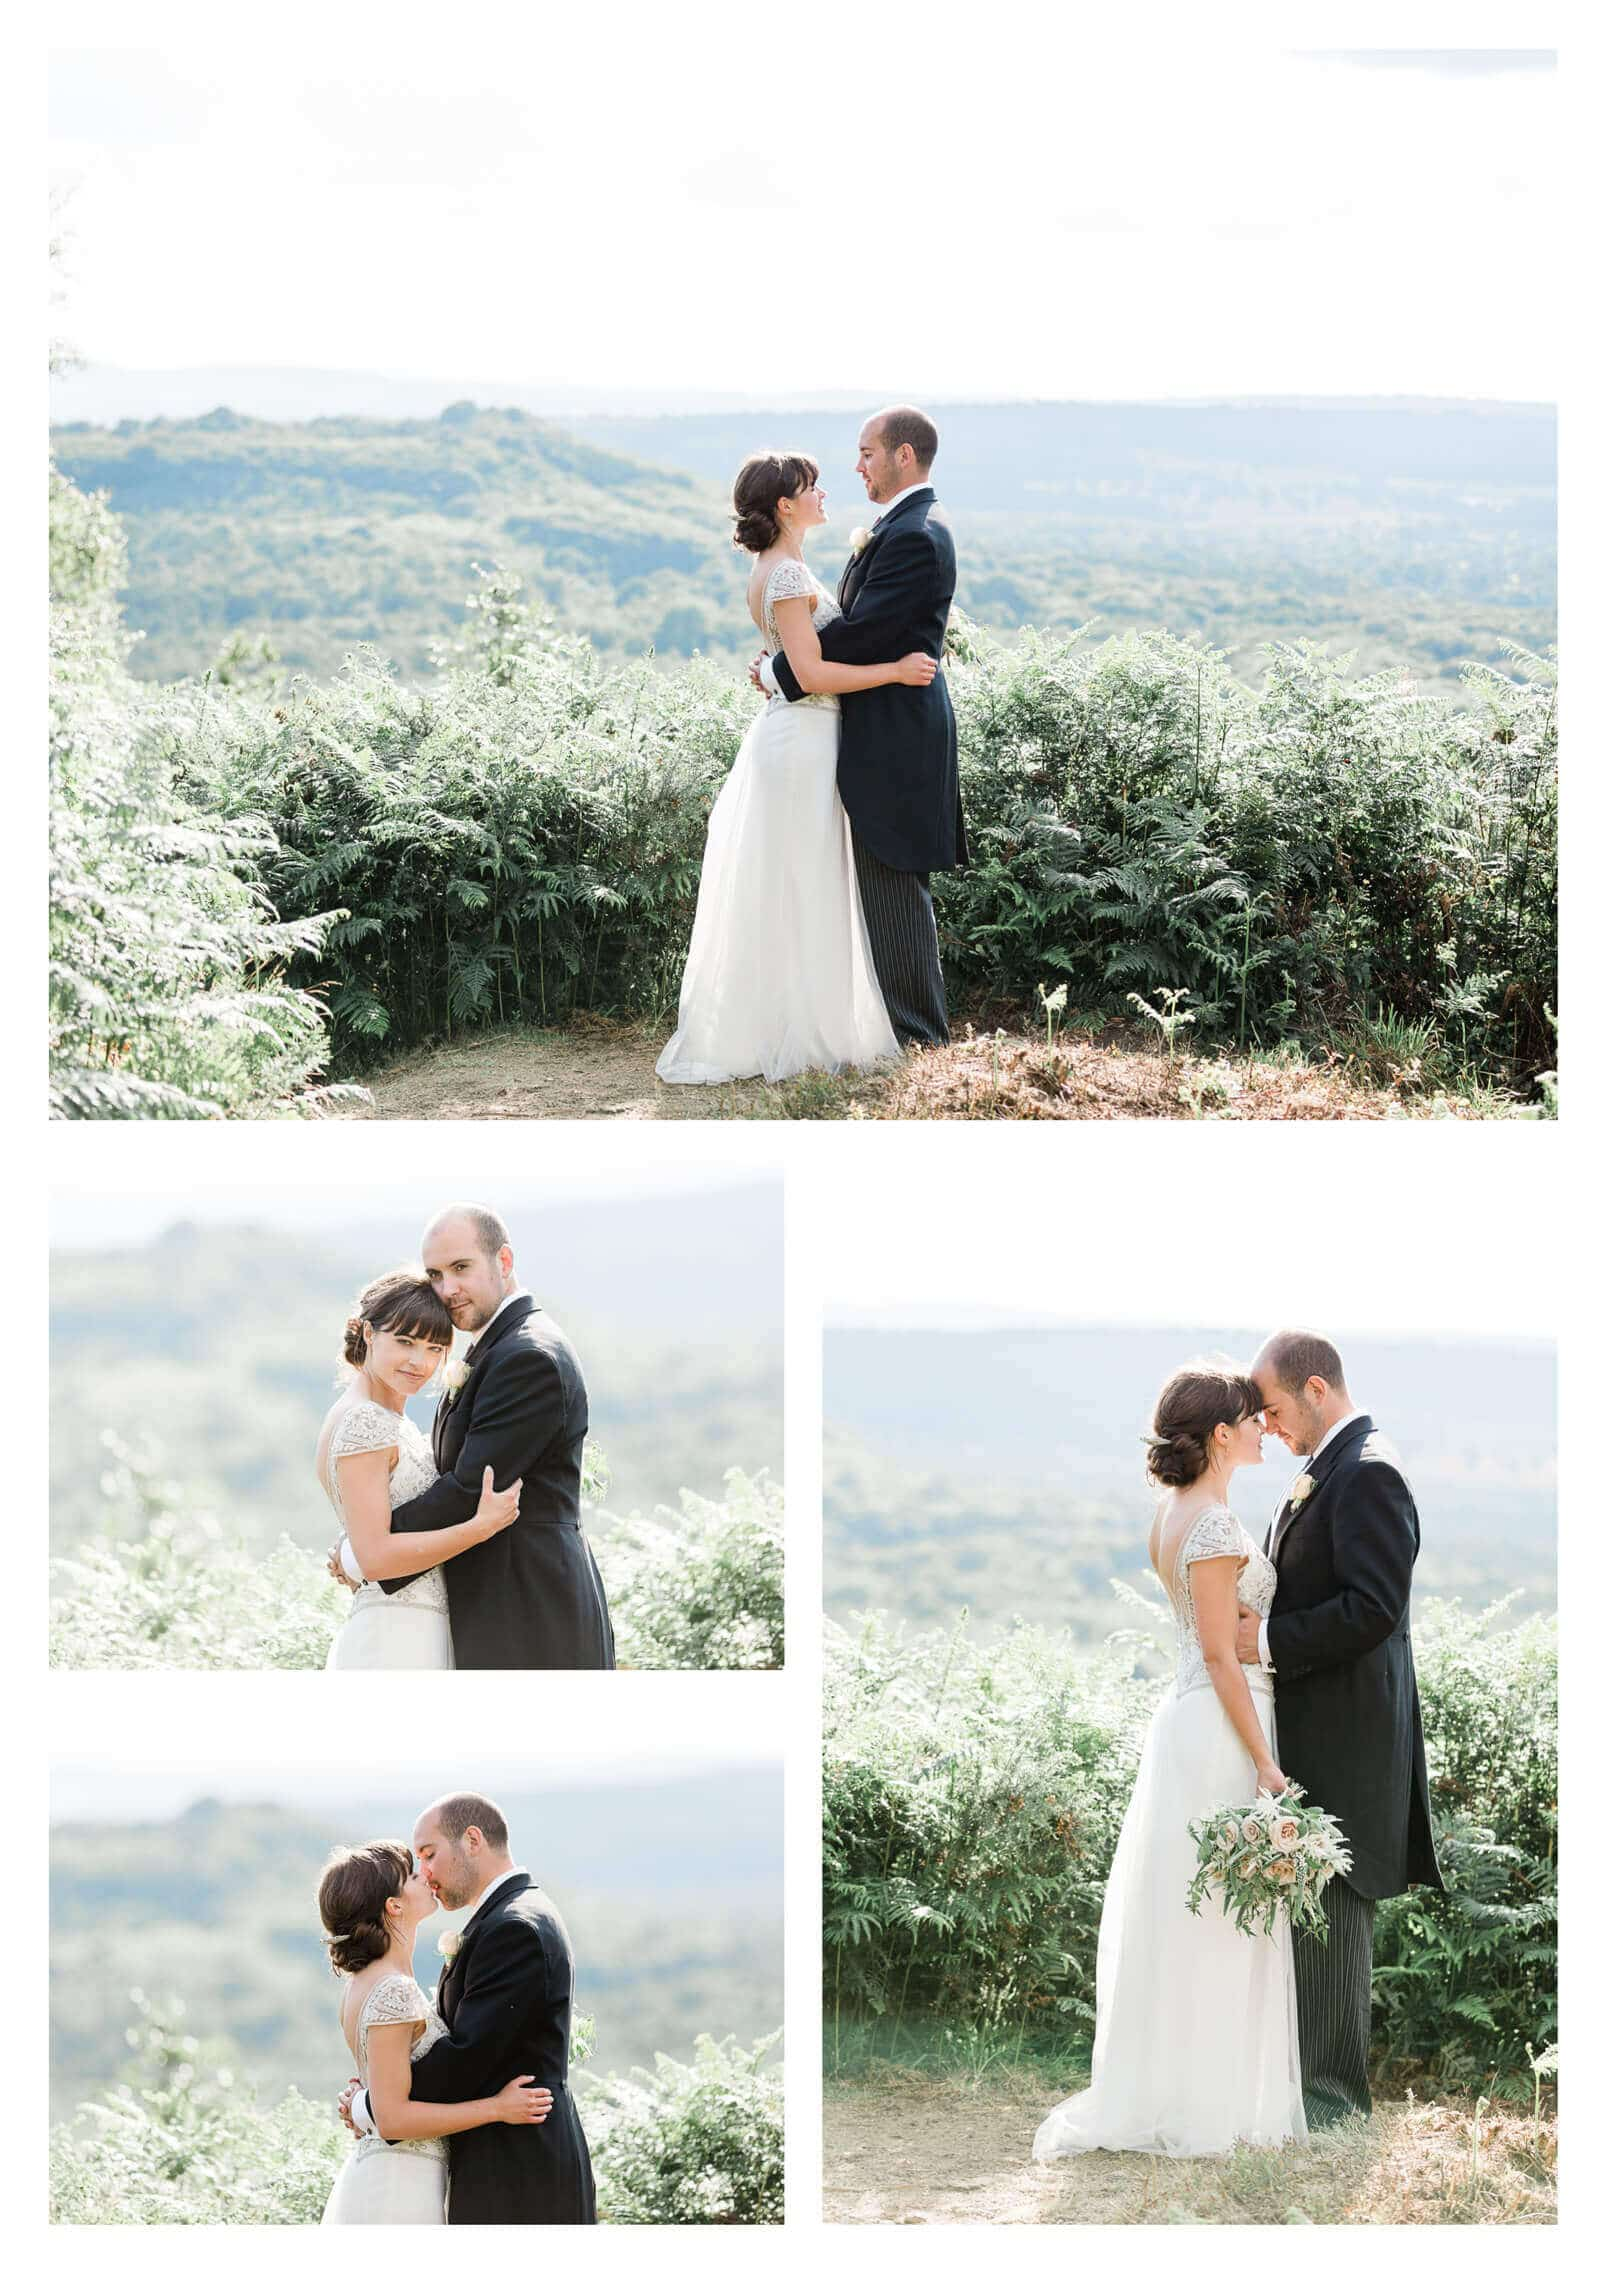 South Downs Stedham couple portraits in Chichester | West-Sussex wedding photographer